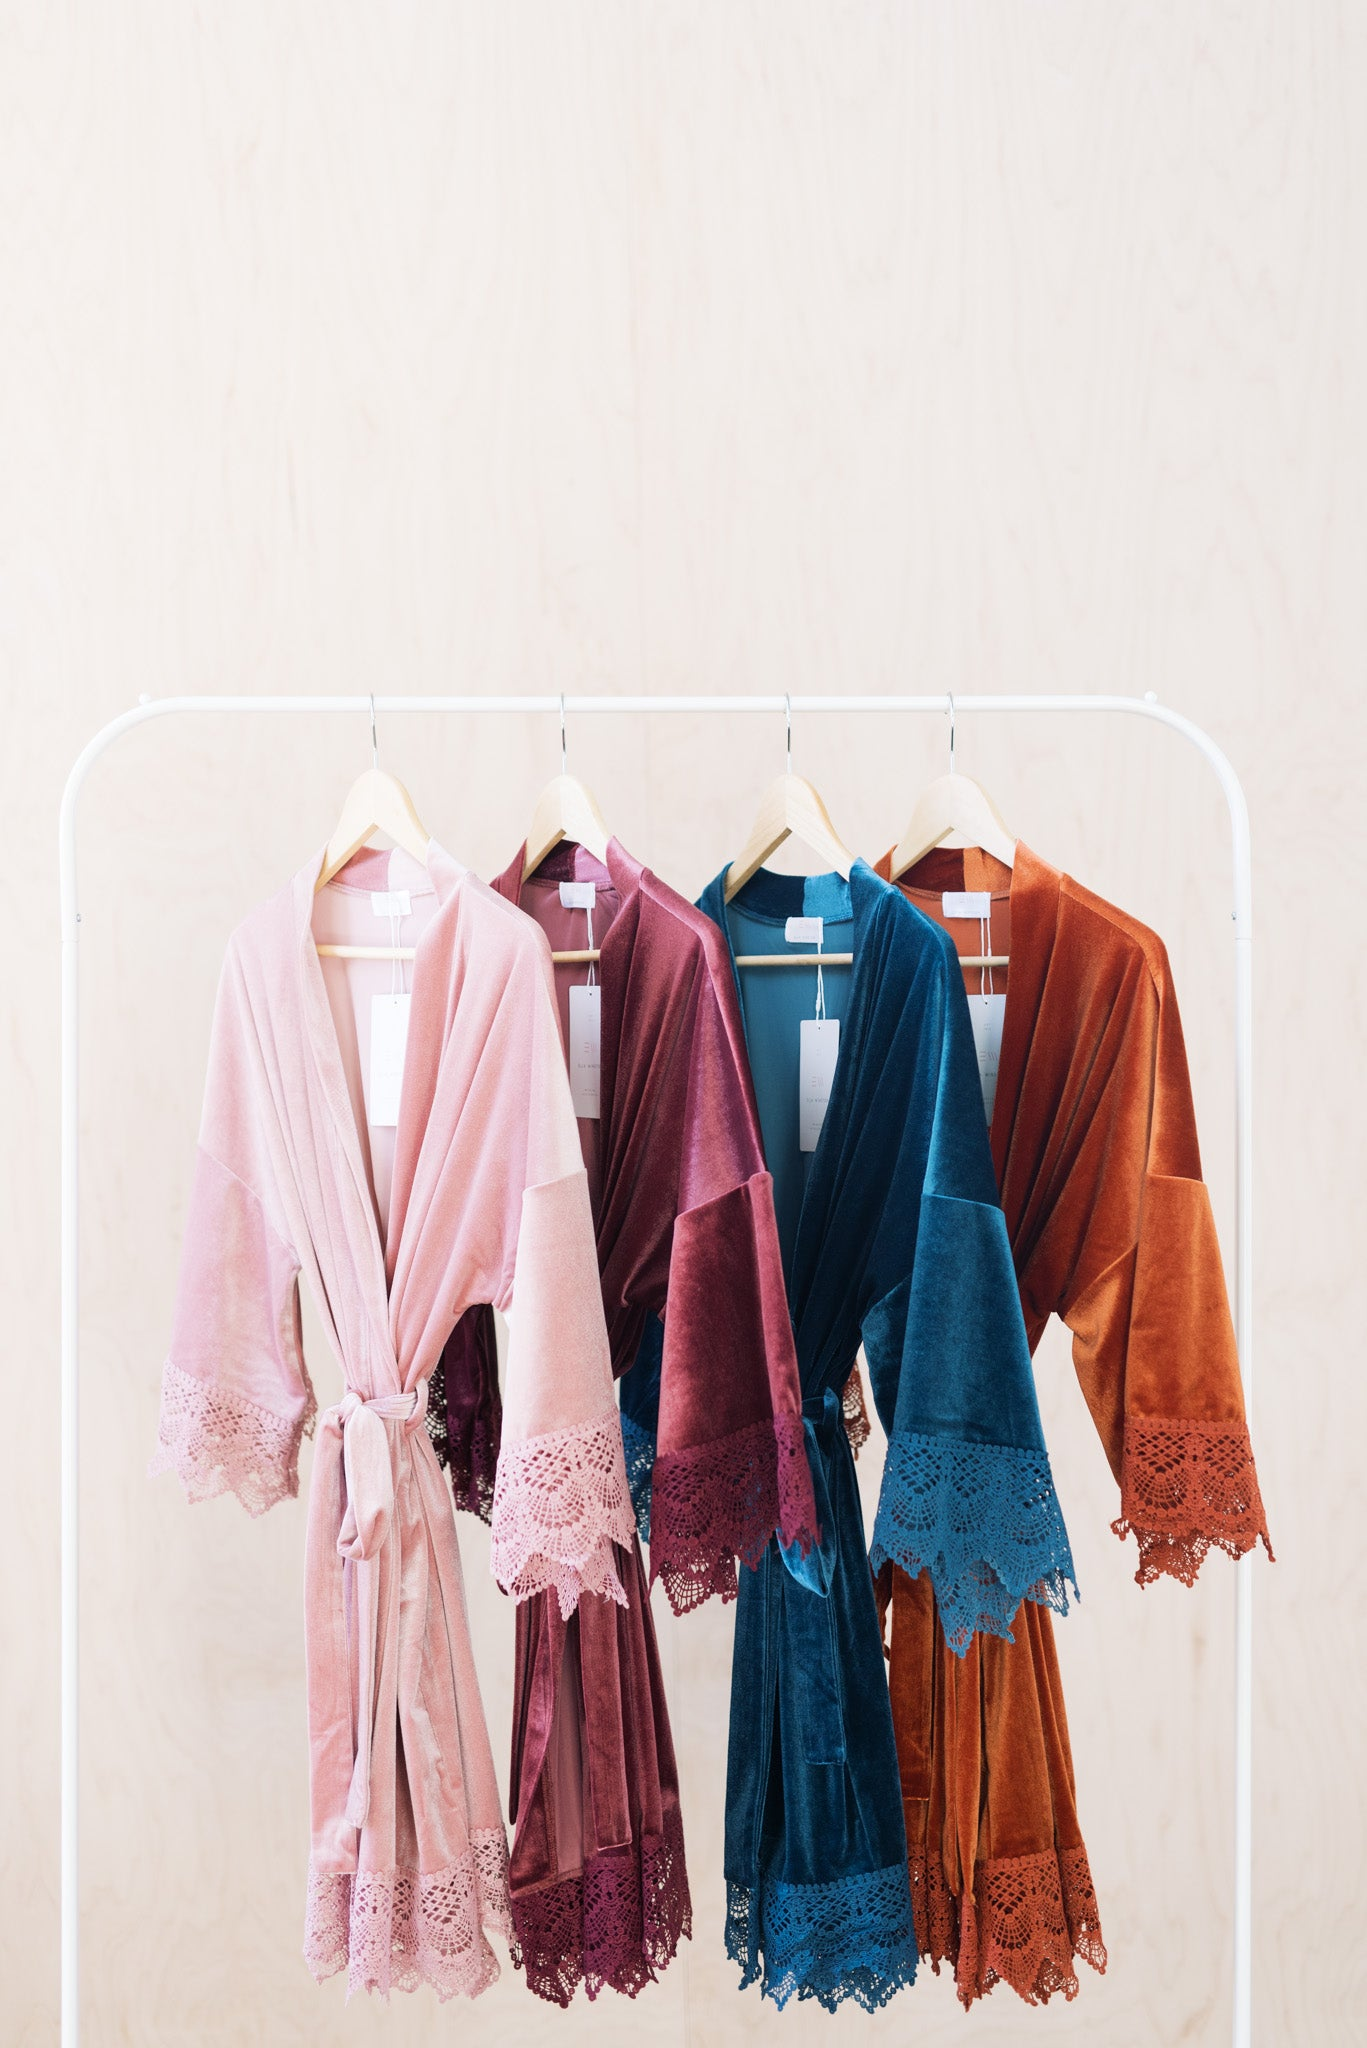 Velvet and Lace Robes in Four Colors, Rose, Mauve, Dusty Blue, Burnt Orange